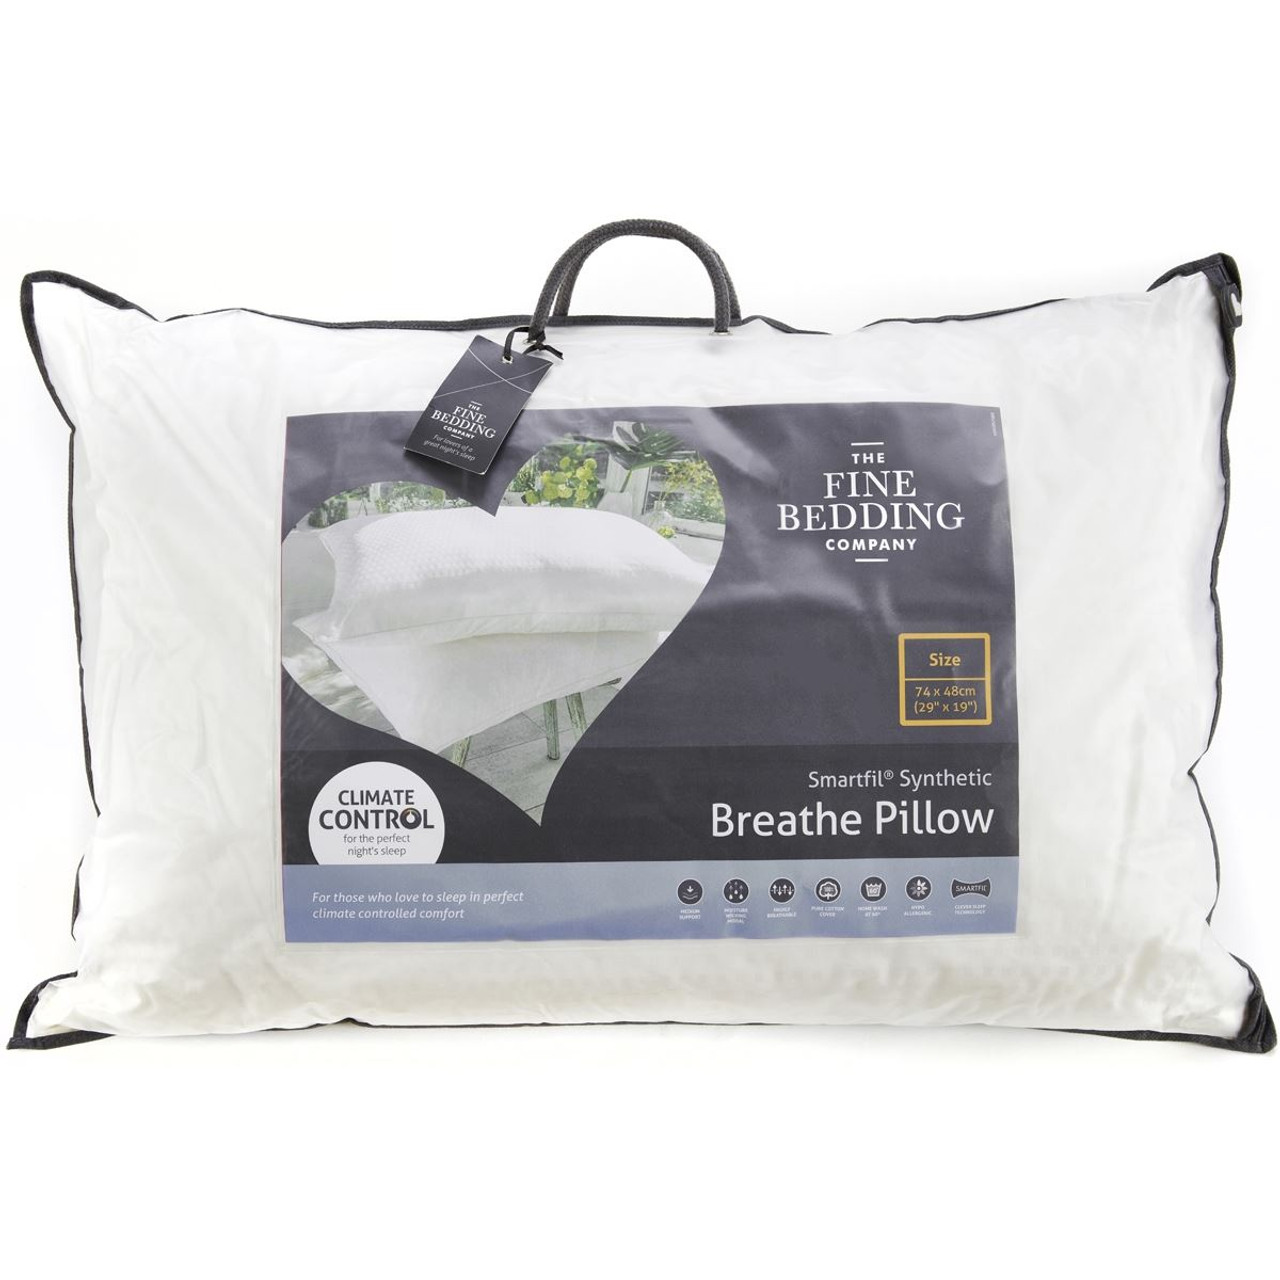 The Fine Bedding Company Breathe Pillow